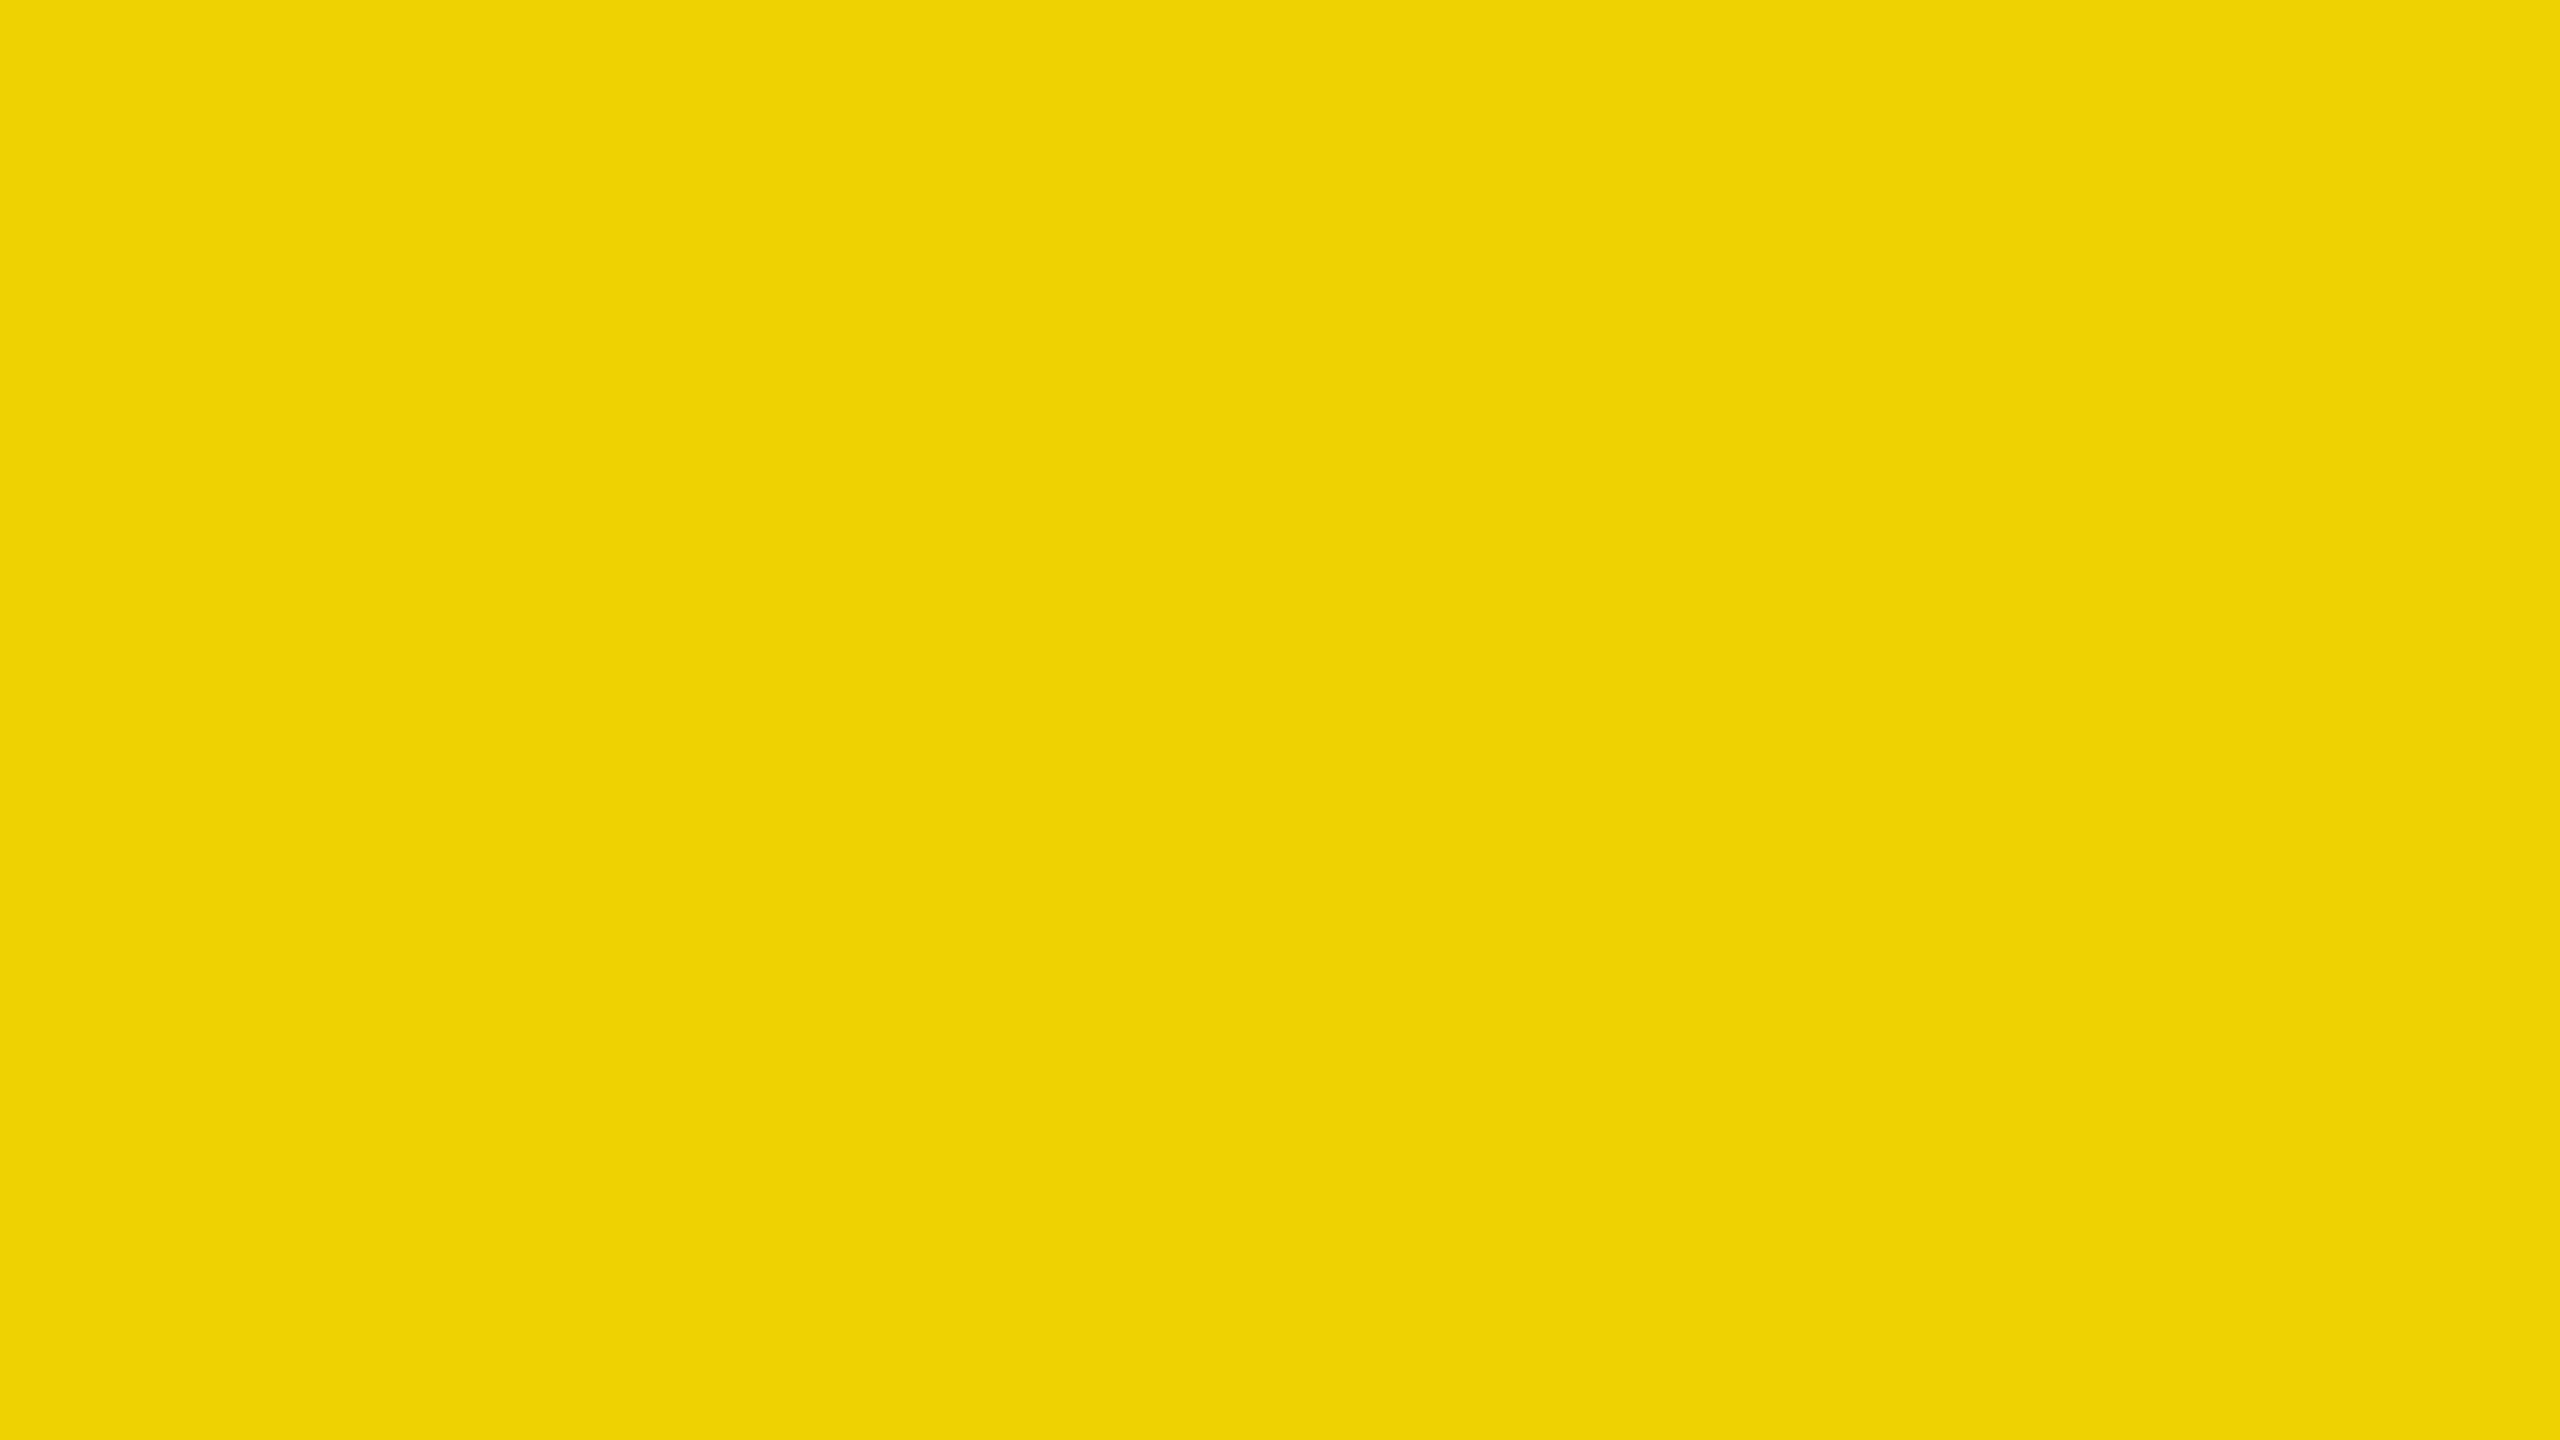 2560x1440 safety yellow solid color background